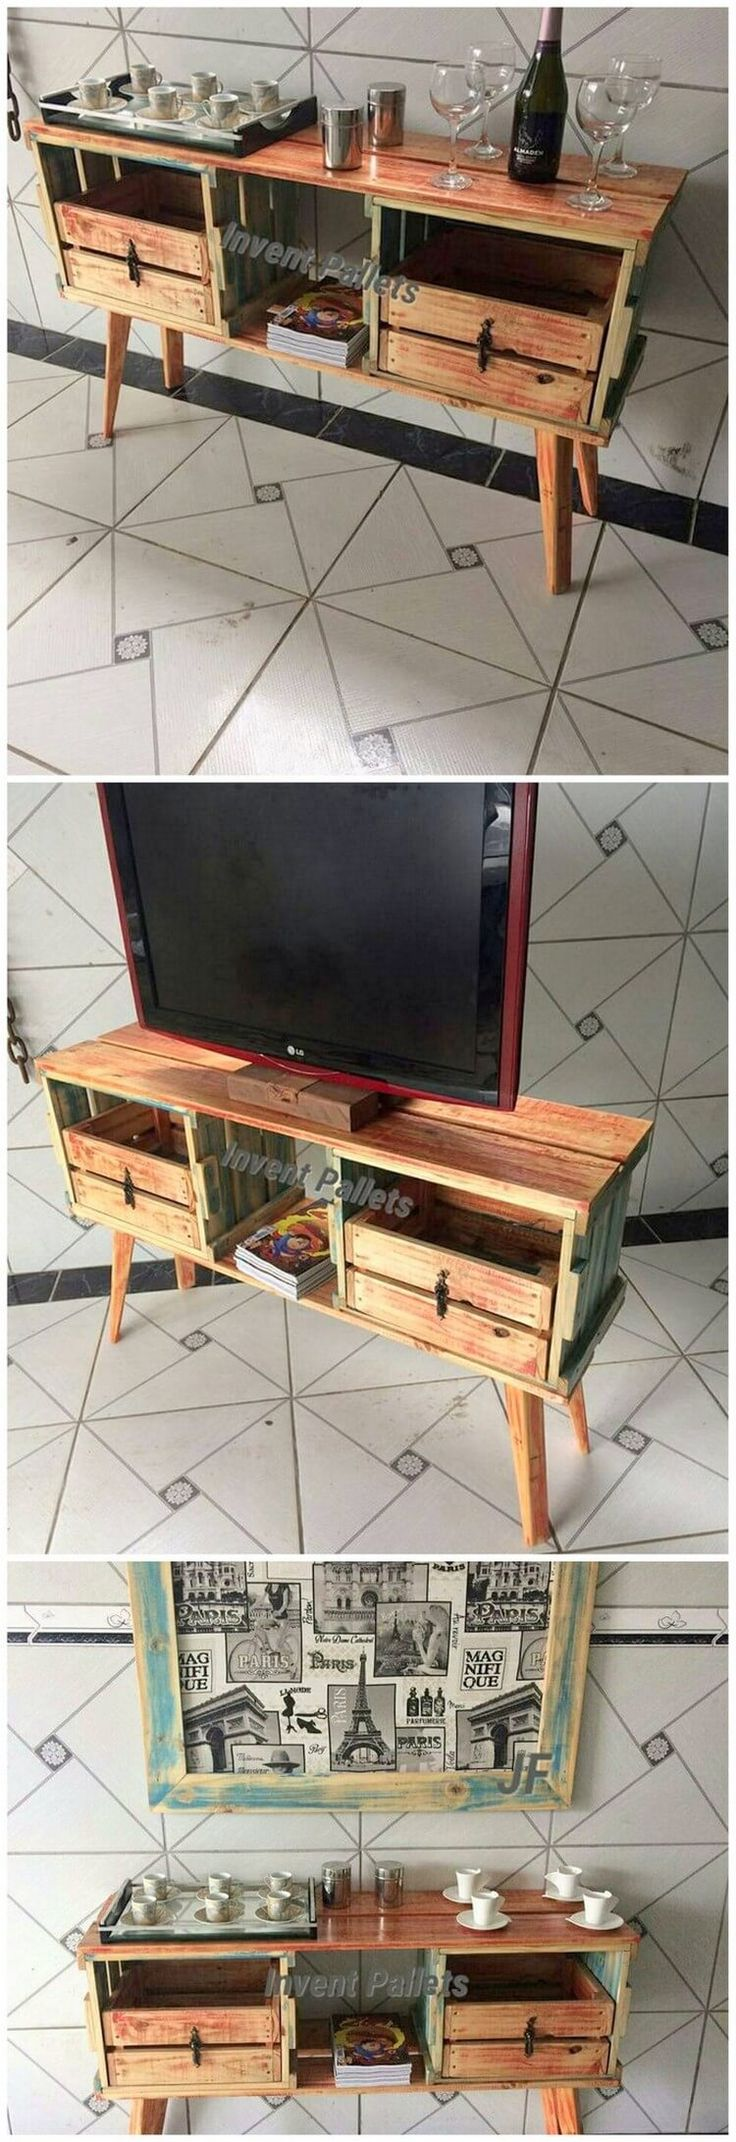 You will probably be finding this creation of wood pallet so eye-catching and peacefully attractive looking. Well, this creation is dedicated designed in the artistic flavors of being the wood pallet TV table stand with the drawers. It is moderate in shape formations where the rustic use of wood pallet is the main attraction.